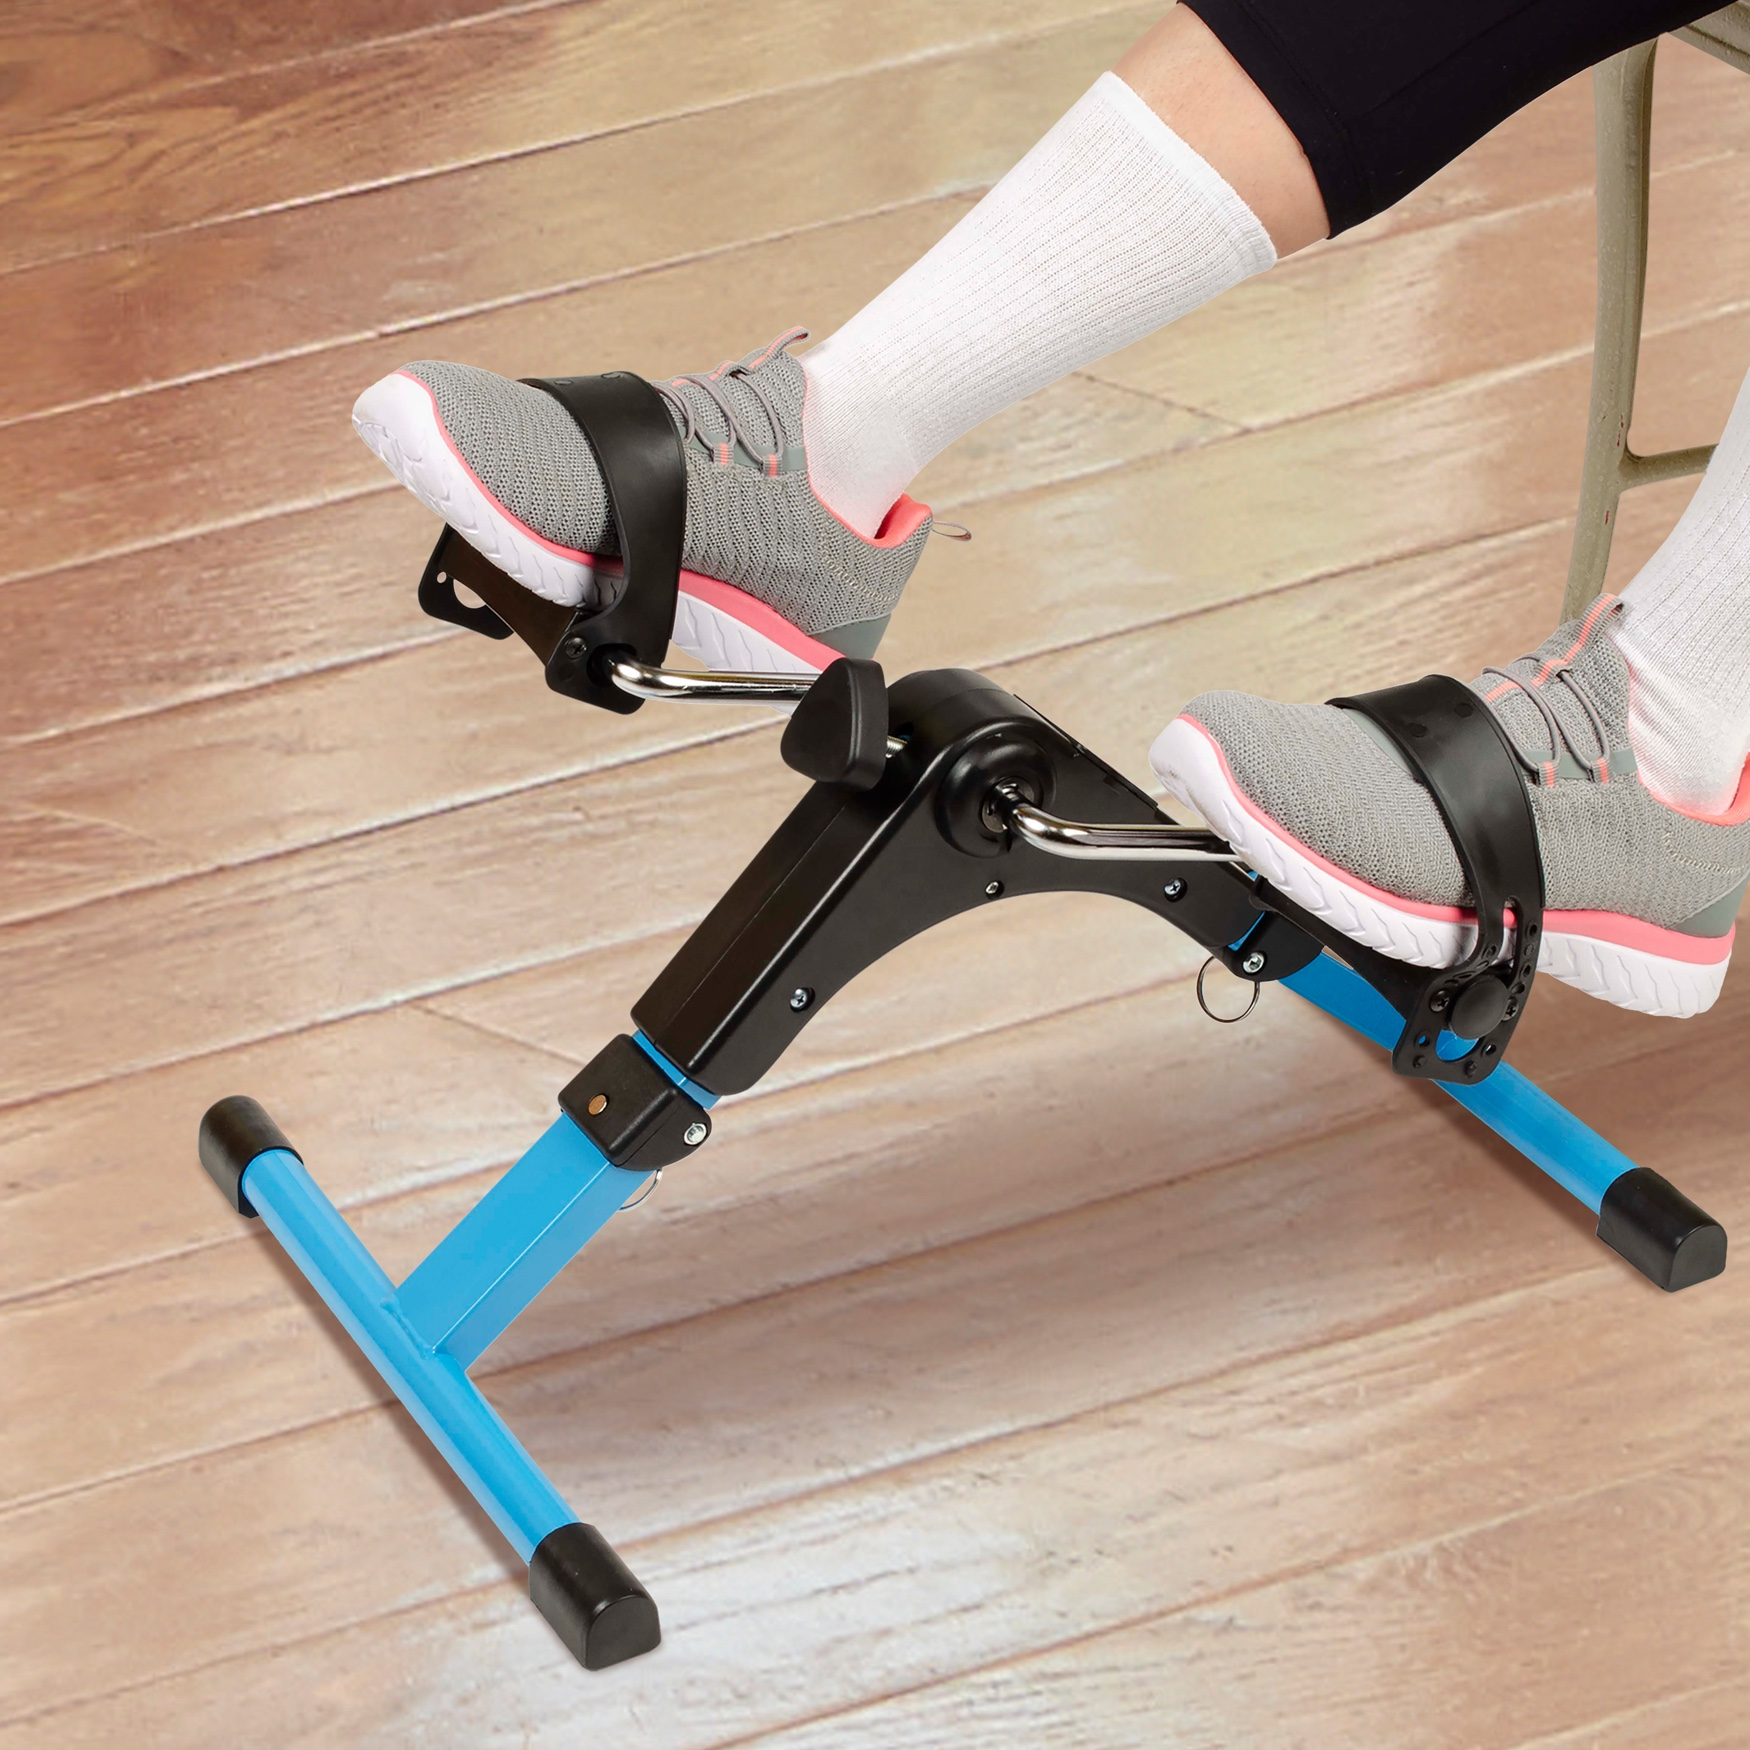 Hometrack™ Folding Pedal Exerciser, BLACK BLUE